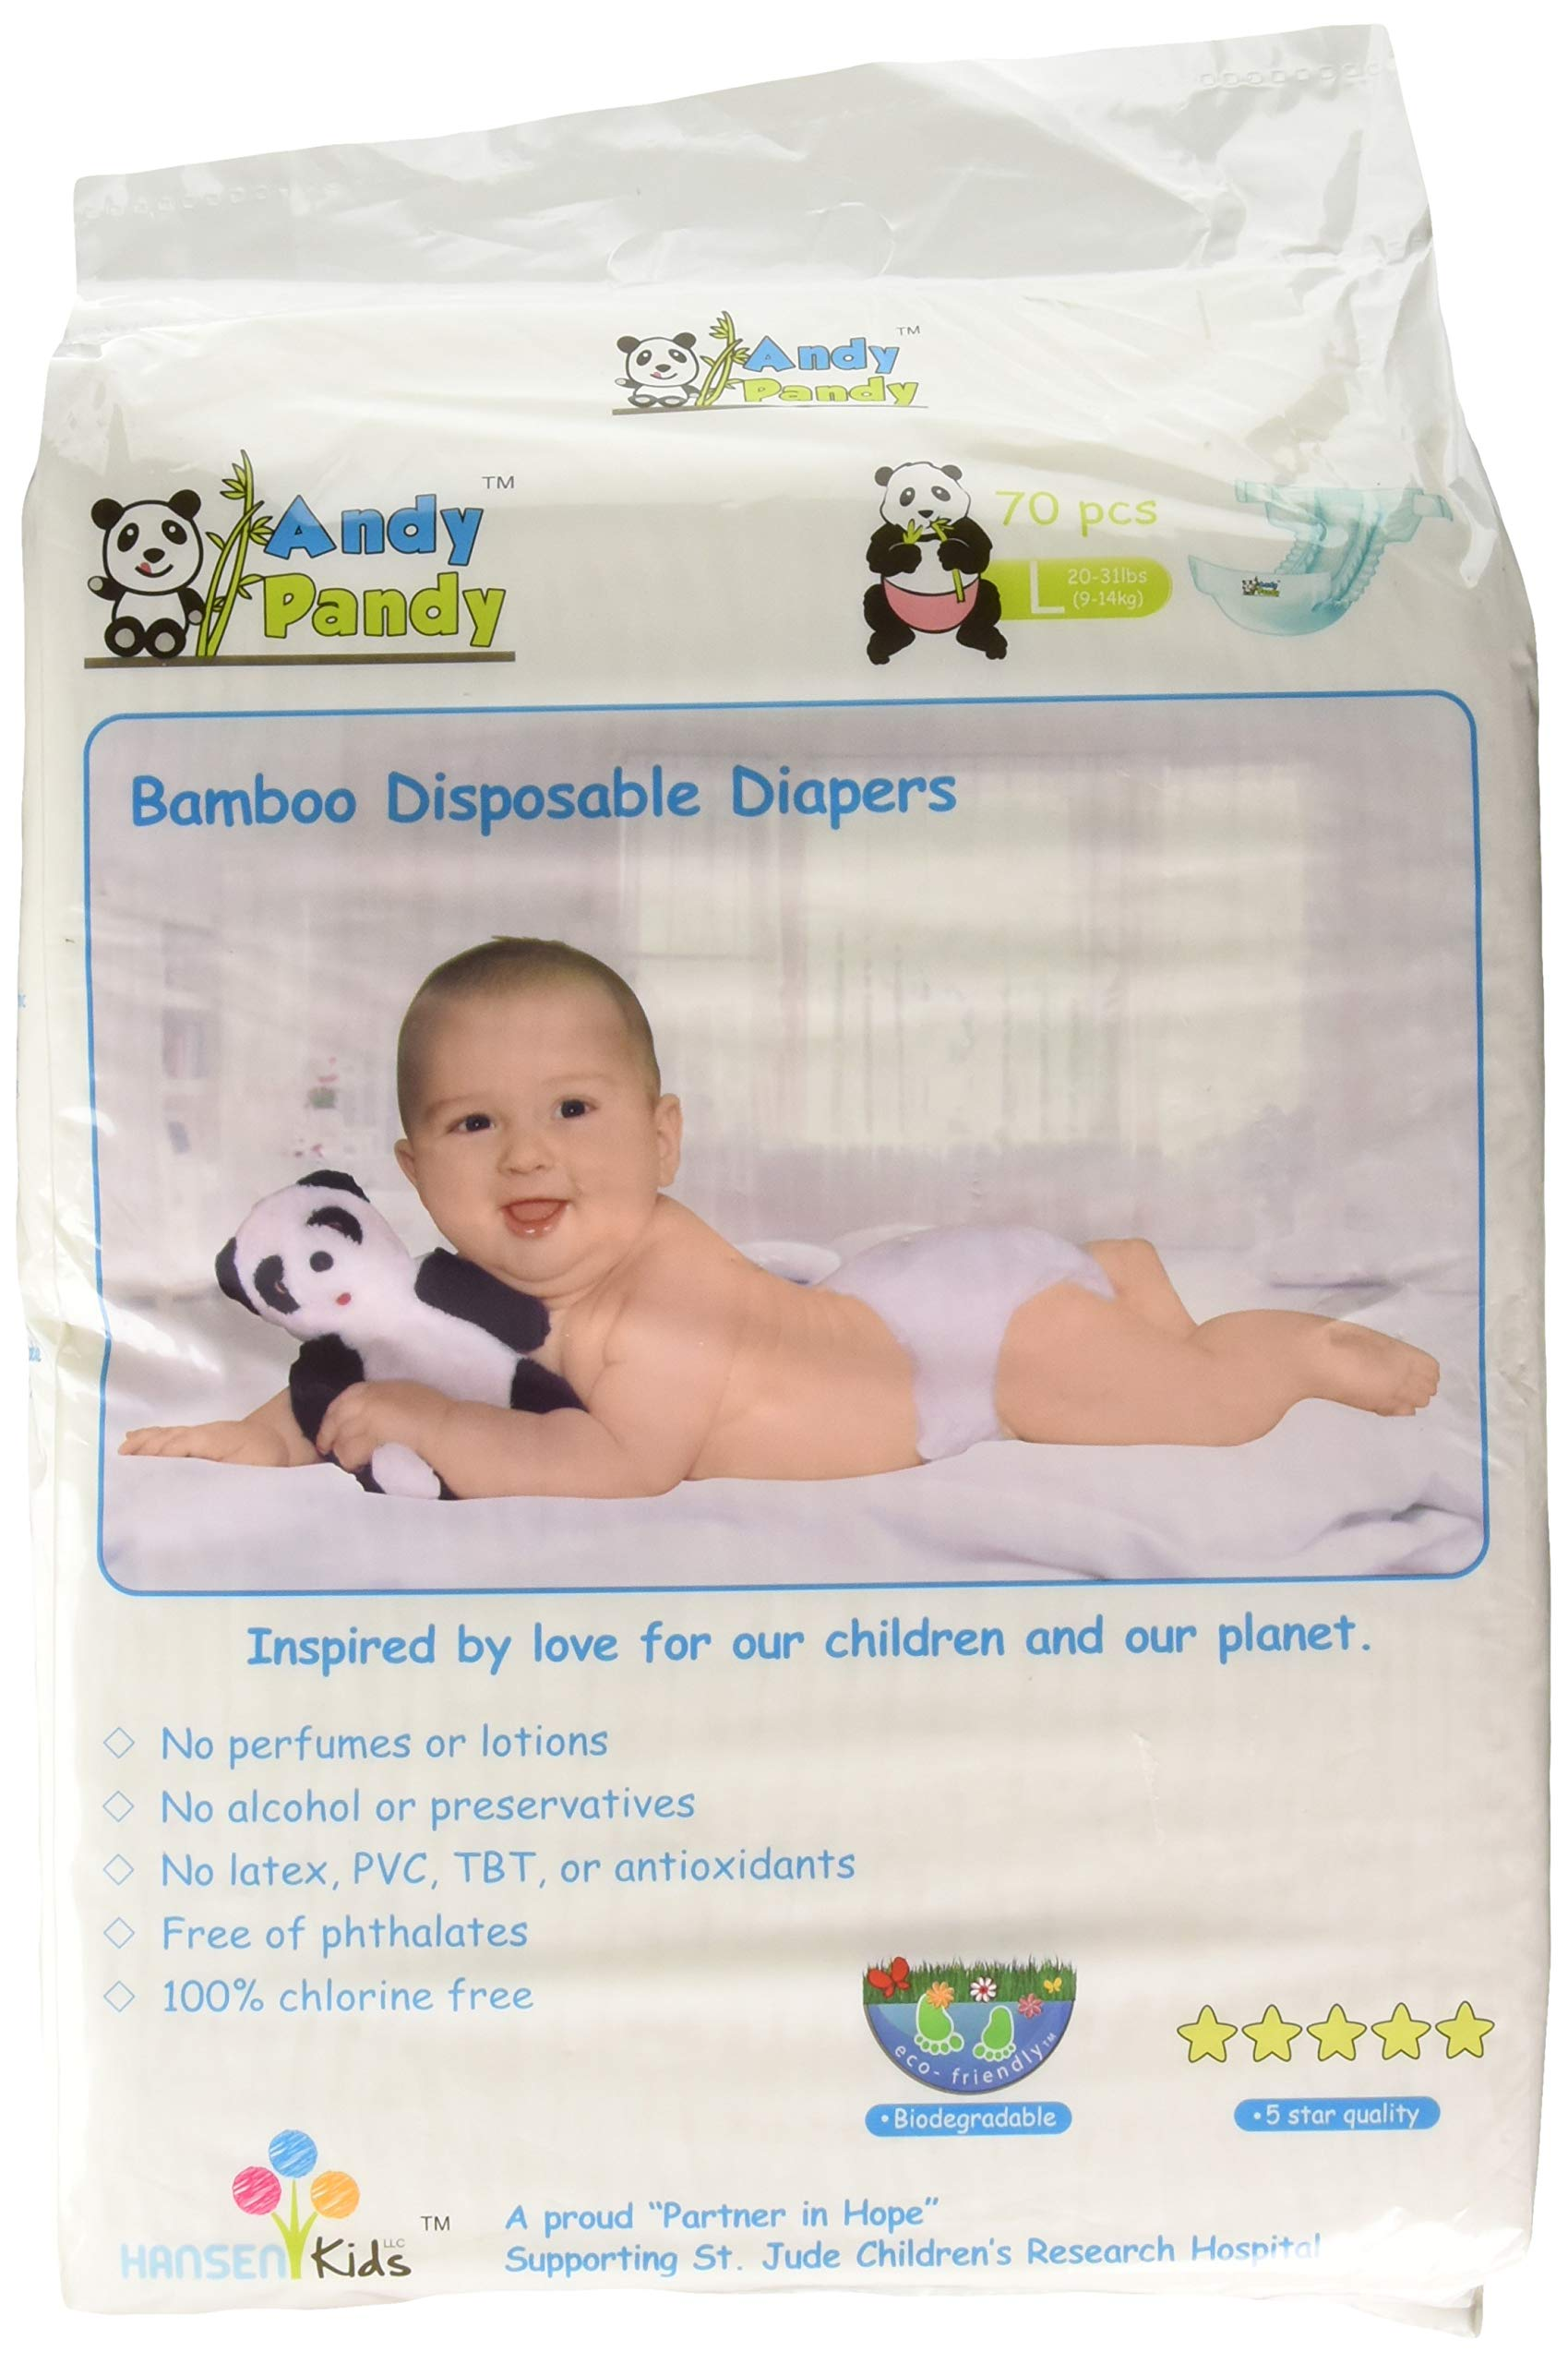 Eco Friendly Premium Bamboo Disposable Diapers by Andy Pandy - Large - For Babies Weighing 20